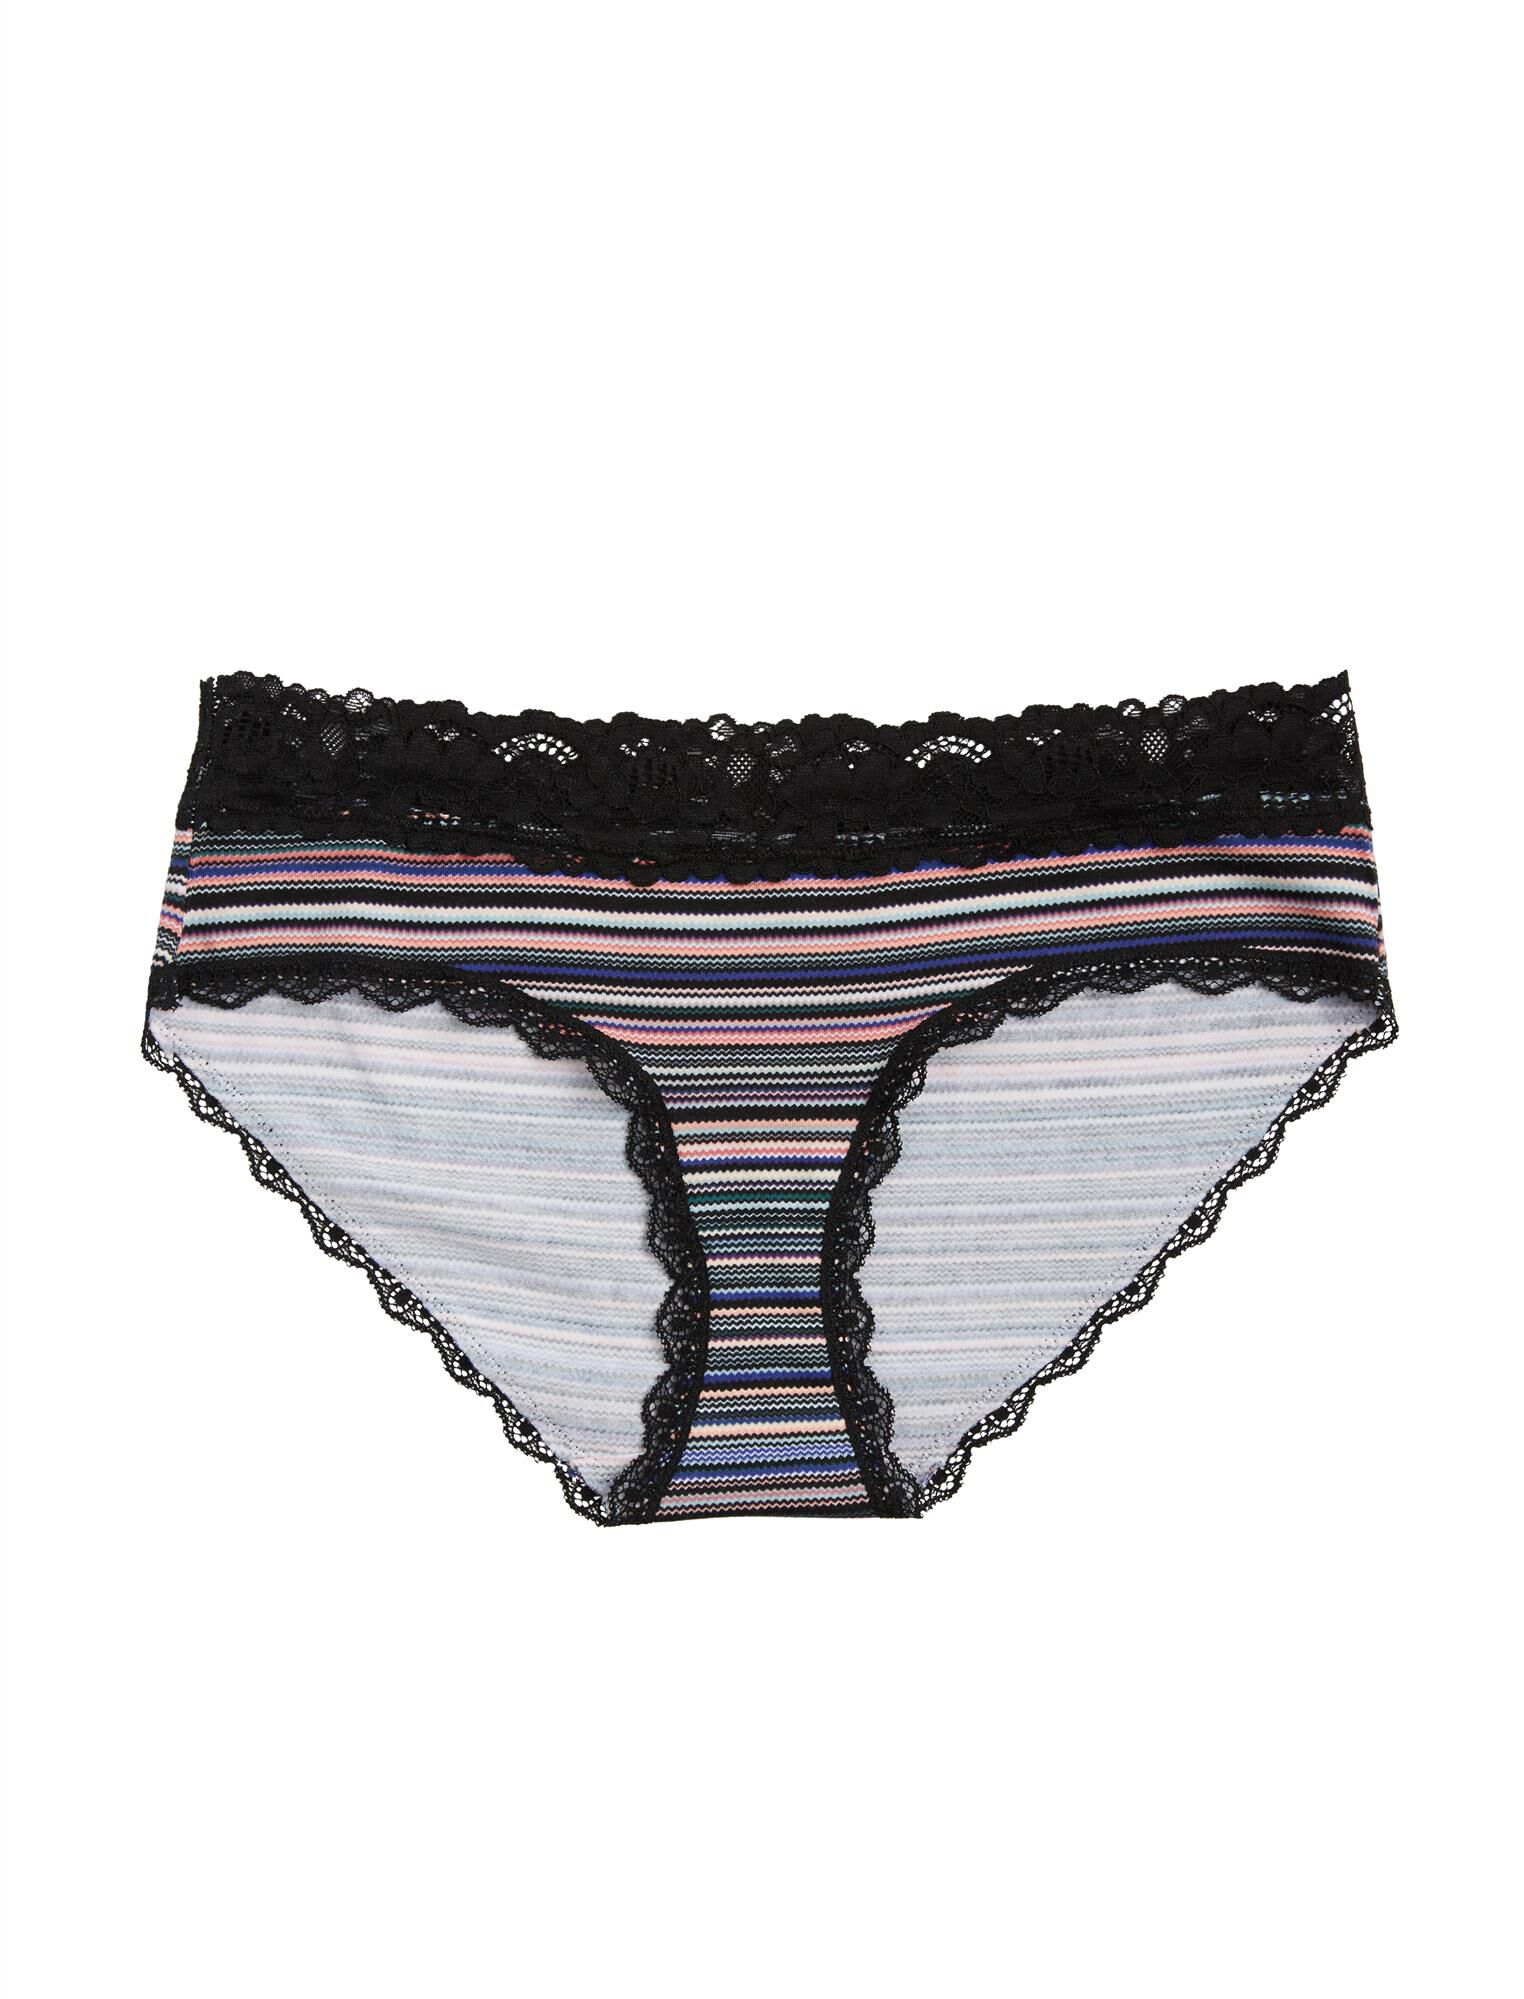 Jessica Simpson Maternity Hipster Panties (single)- Plum/Navy Stripe